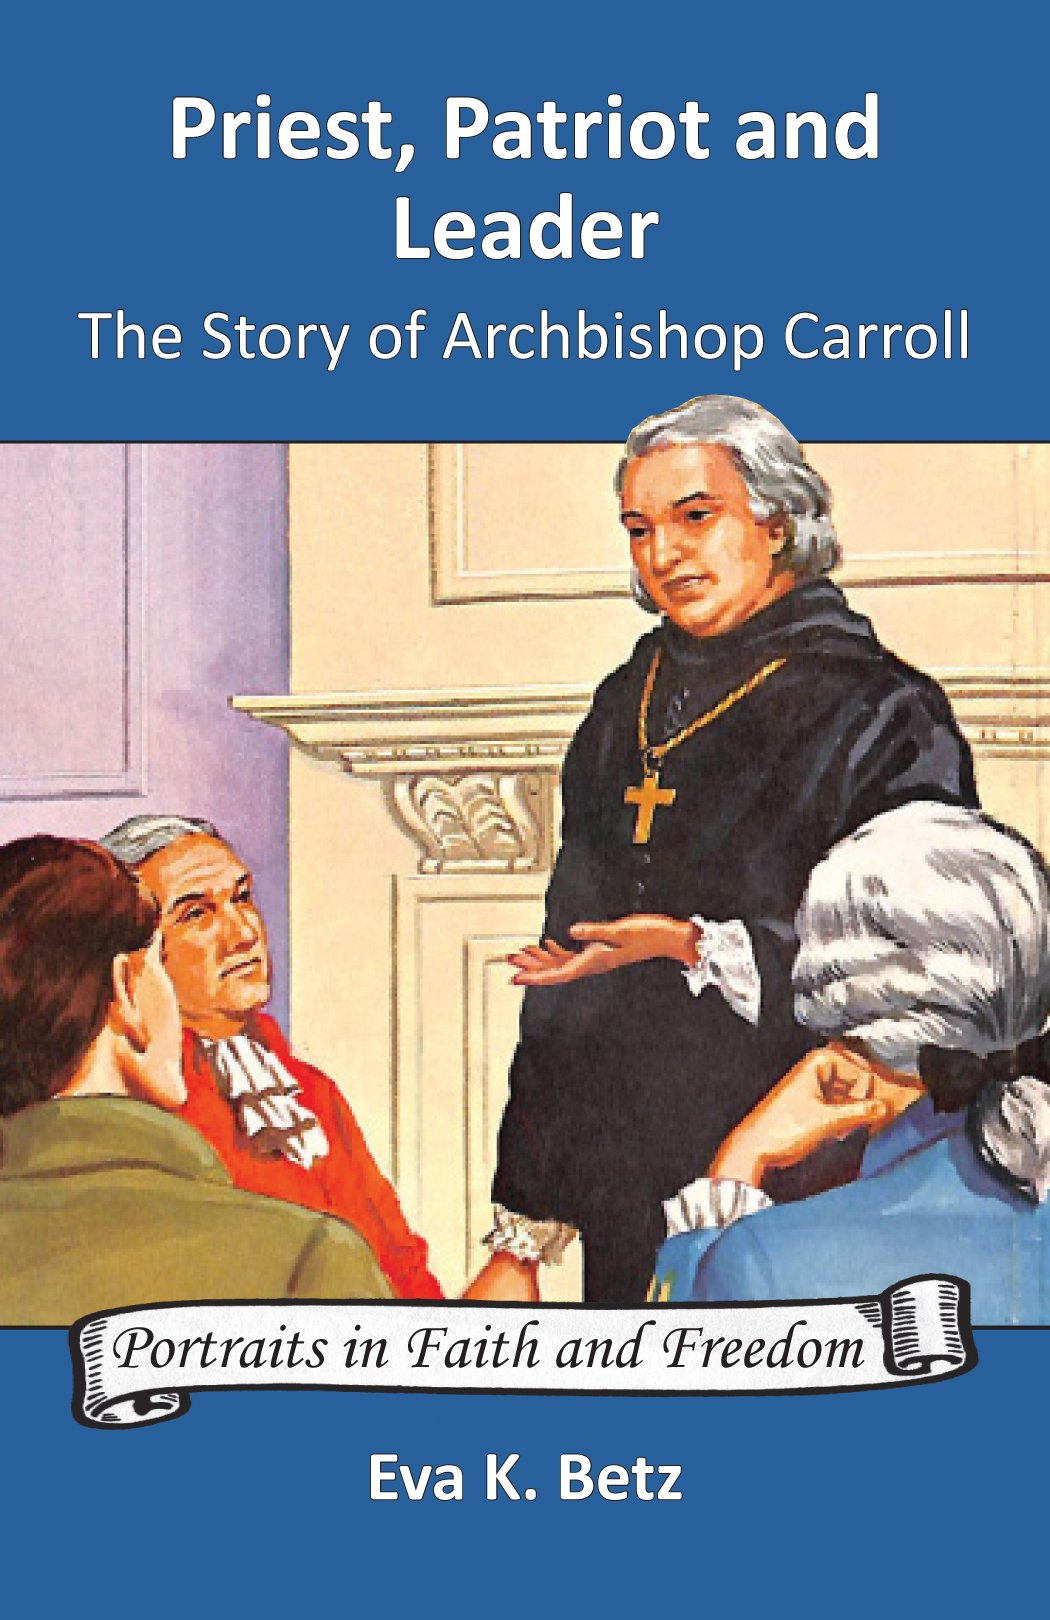 Priest, Patriot and Leader: The Story of Archbishop Carroll (Portraits in Faith and Freedom)